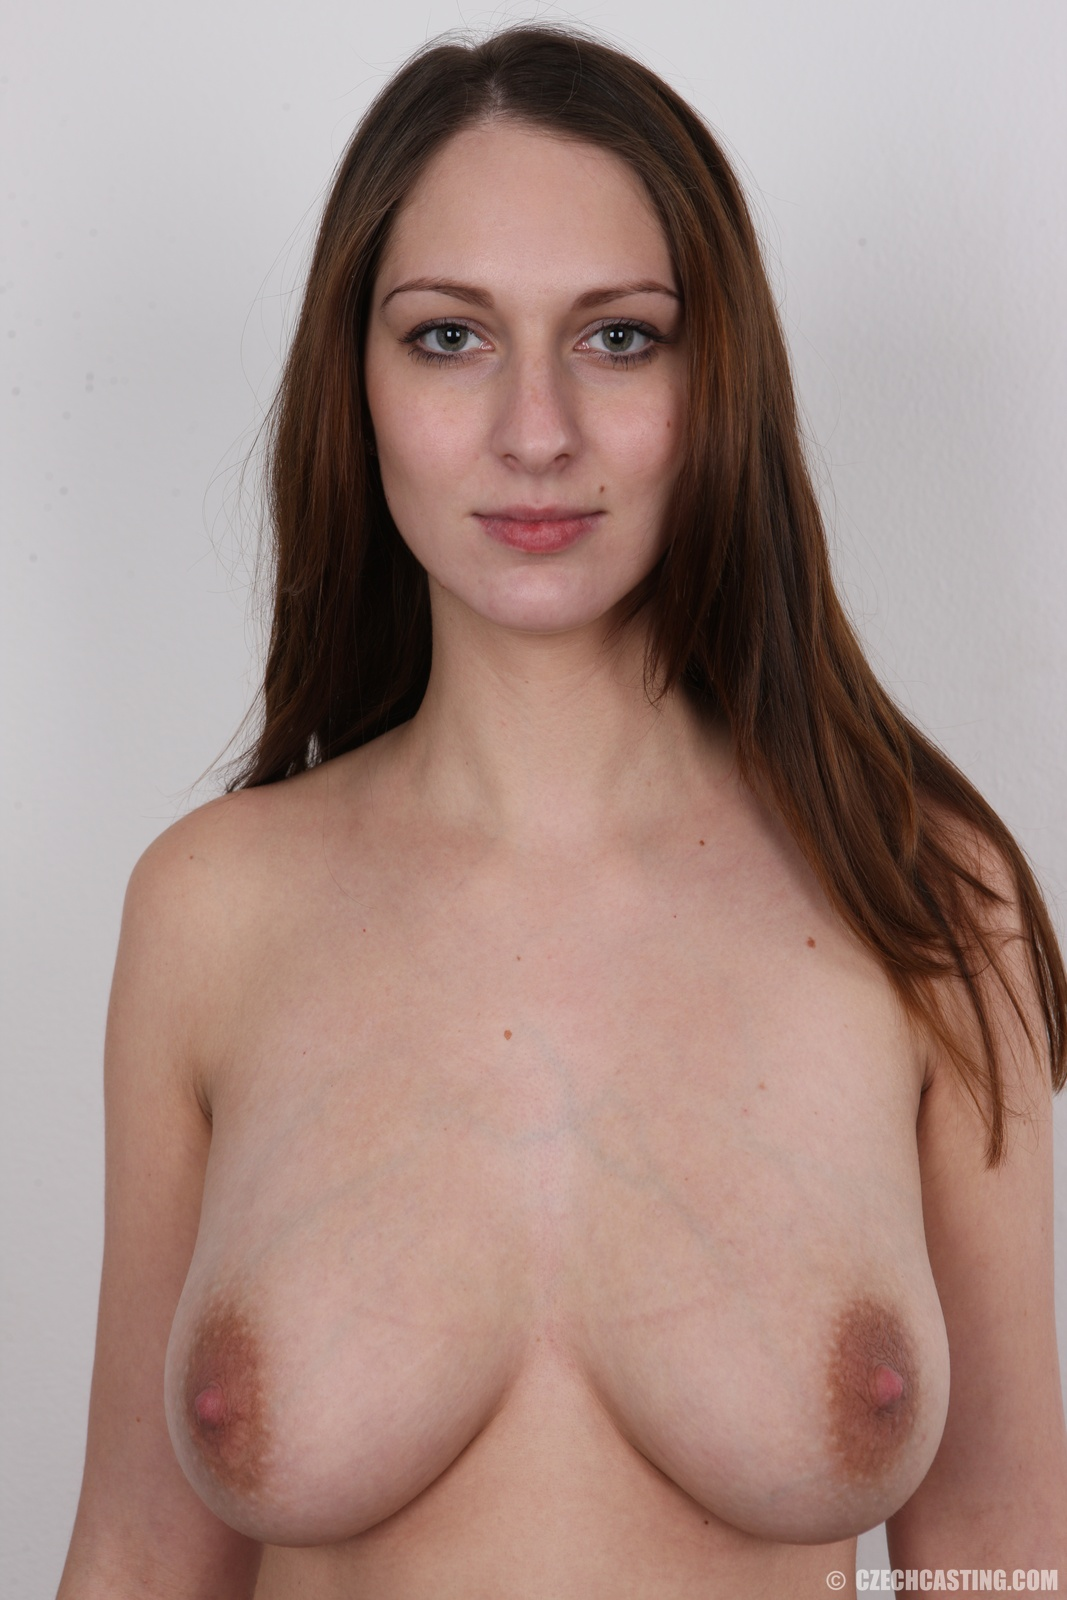 Audition girl is willing to do anything 3